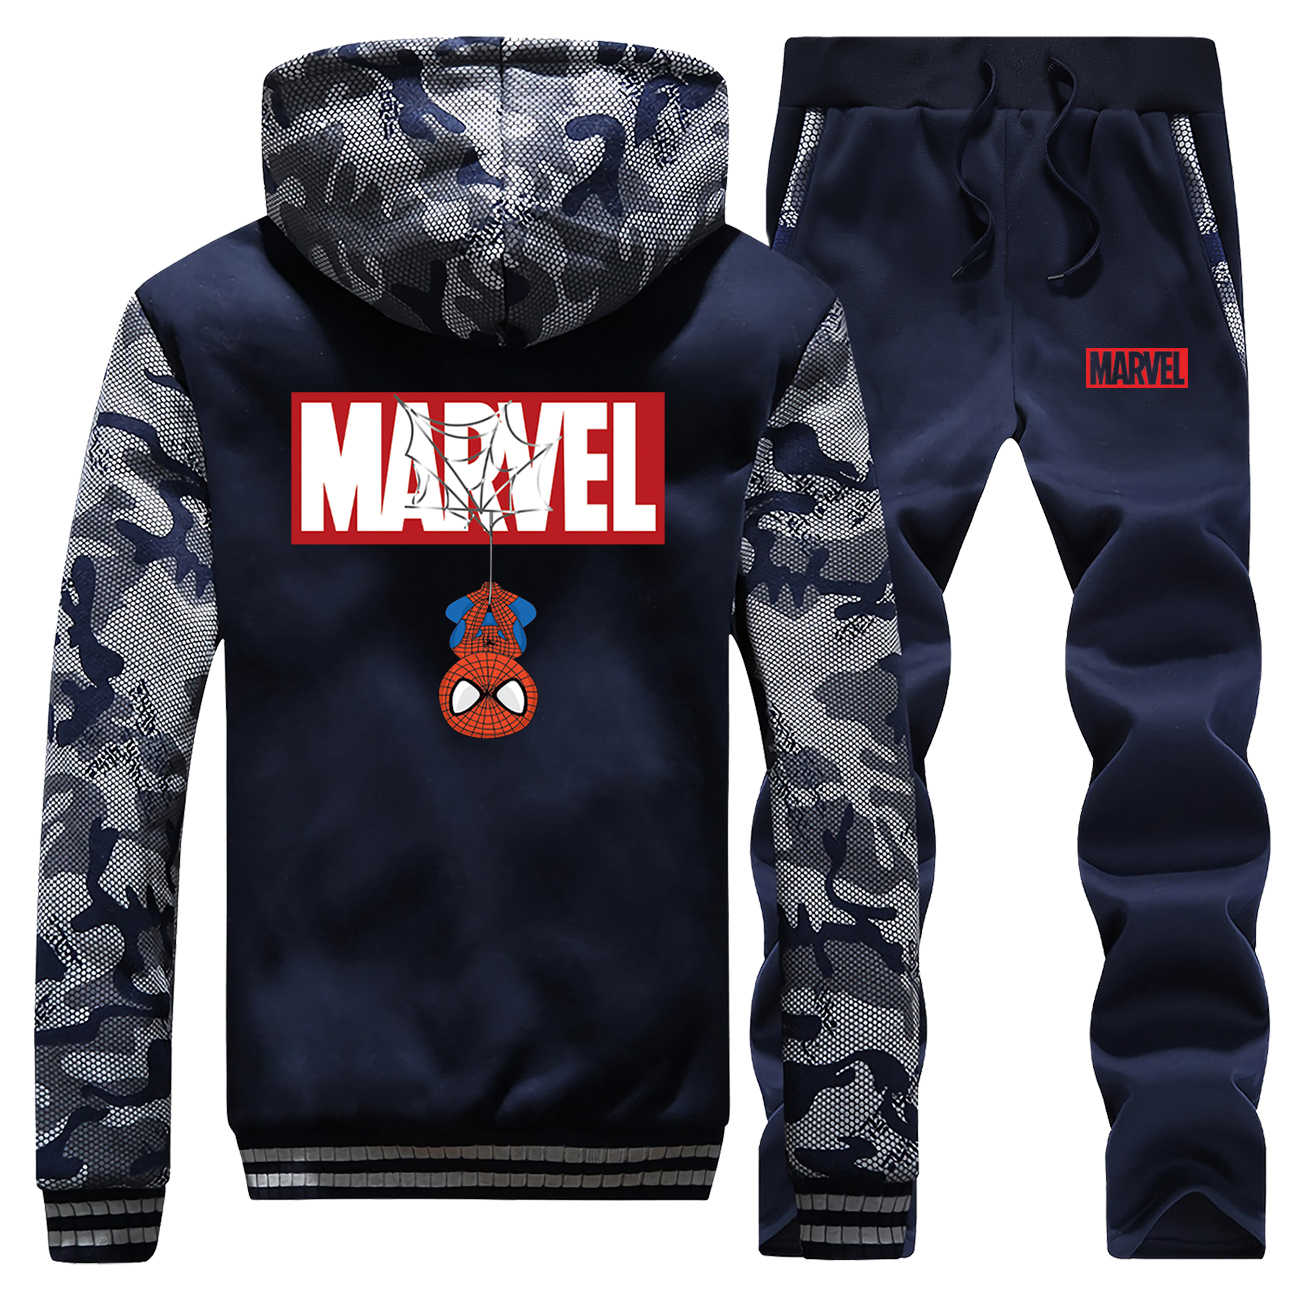 MEN/'S SUPER TRENDY AND NEW TRACKSUIT HOT STYLISH PRINT JOGGER AND ZIP JACKET SET